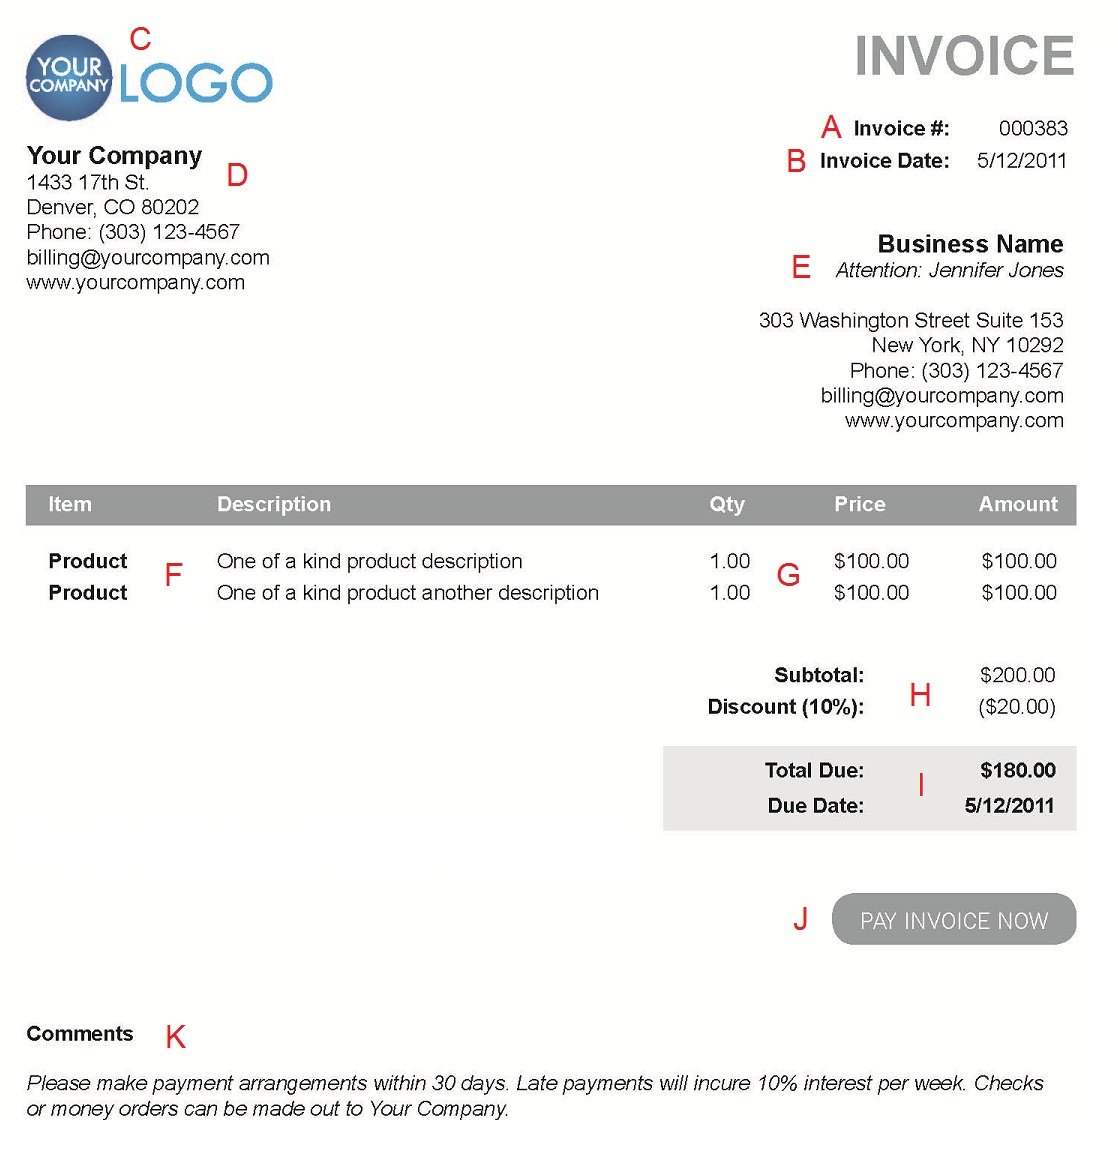 Centralasianshepherdus  Scenic The  Different Sections Of An Electronic Payment Invoice With Lovable A  With Lovely Invoice Format Template Also Invoice Log In Addition Invoice Email Message And Monthly Invoice As Well As Difference Between Msrp And Invoice Price Additionally Express Invoice Mac From Paysimplecom With Centralasianshepherdus  Lovable The  Different Sections Of An Electronic Payment Invoice With Lovely A  And Scenic Invoice Format Template Also Invoice Log In Addition Invoice Email Message From Paysimplecom